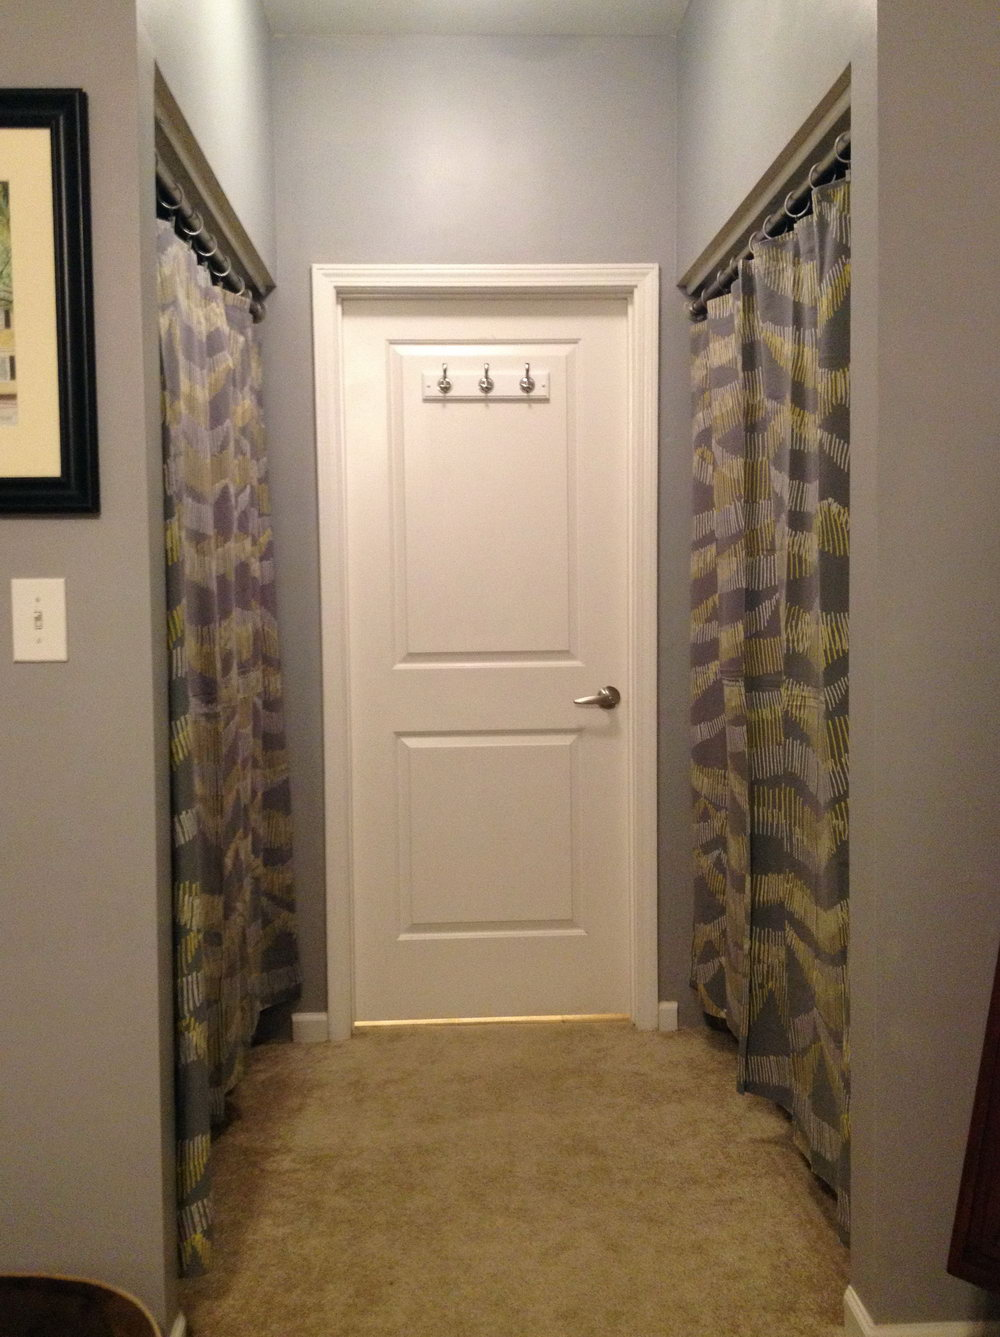 Replacing Sliding Closet Doors With Curtains